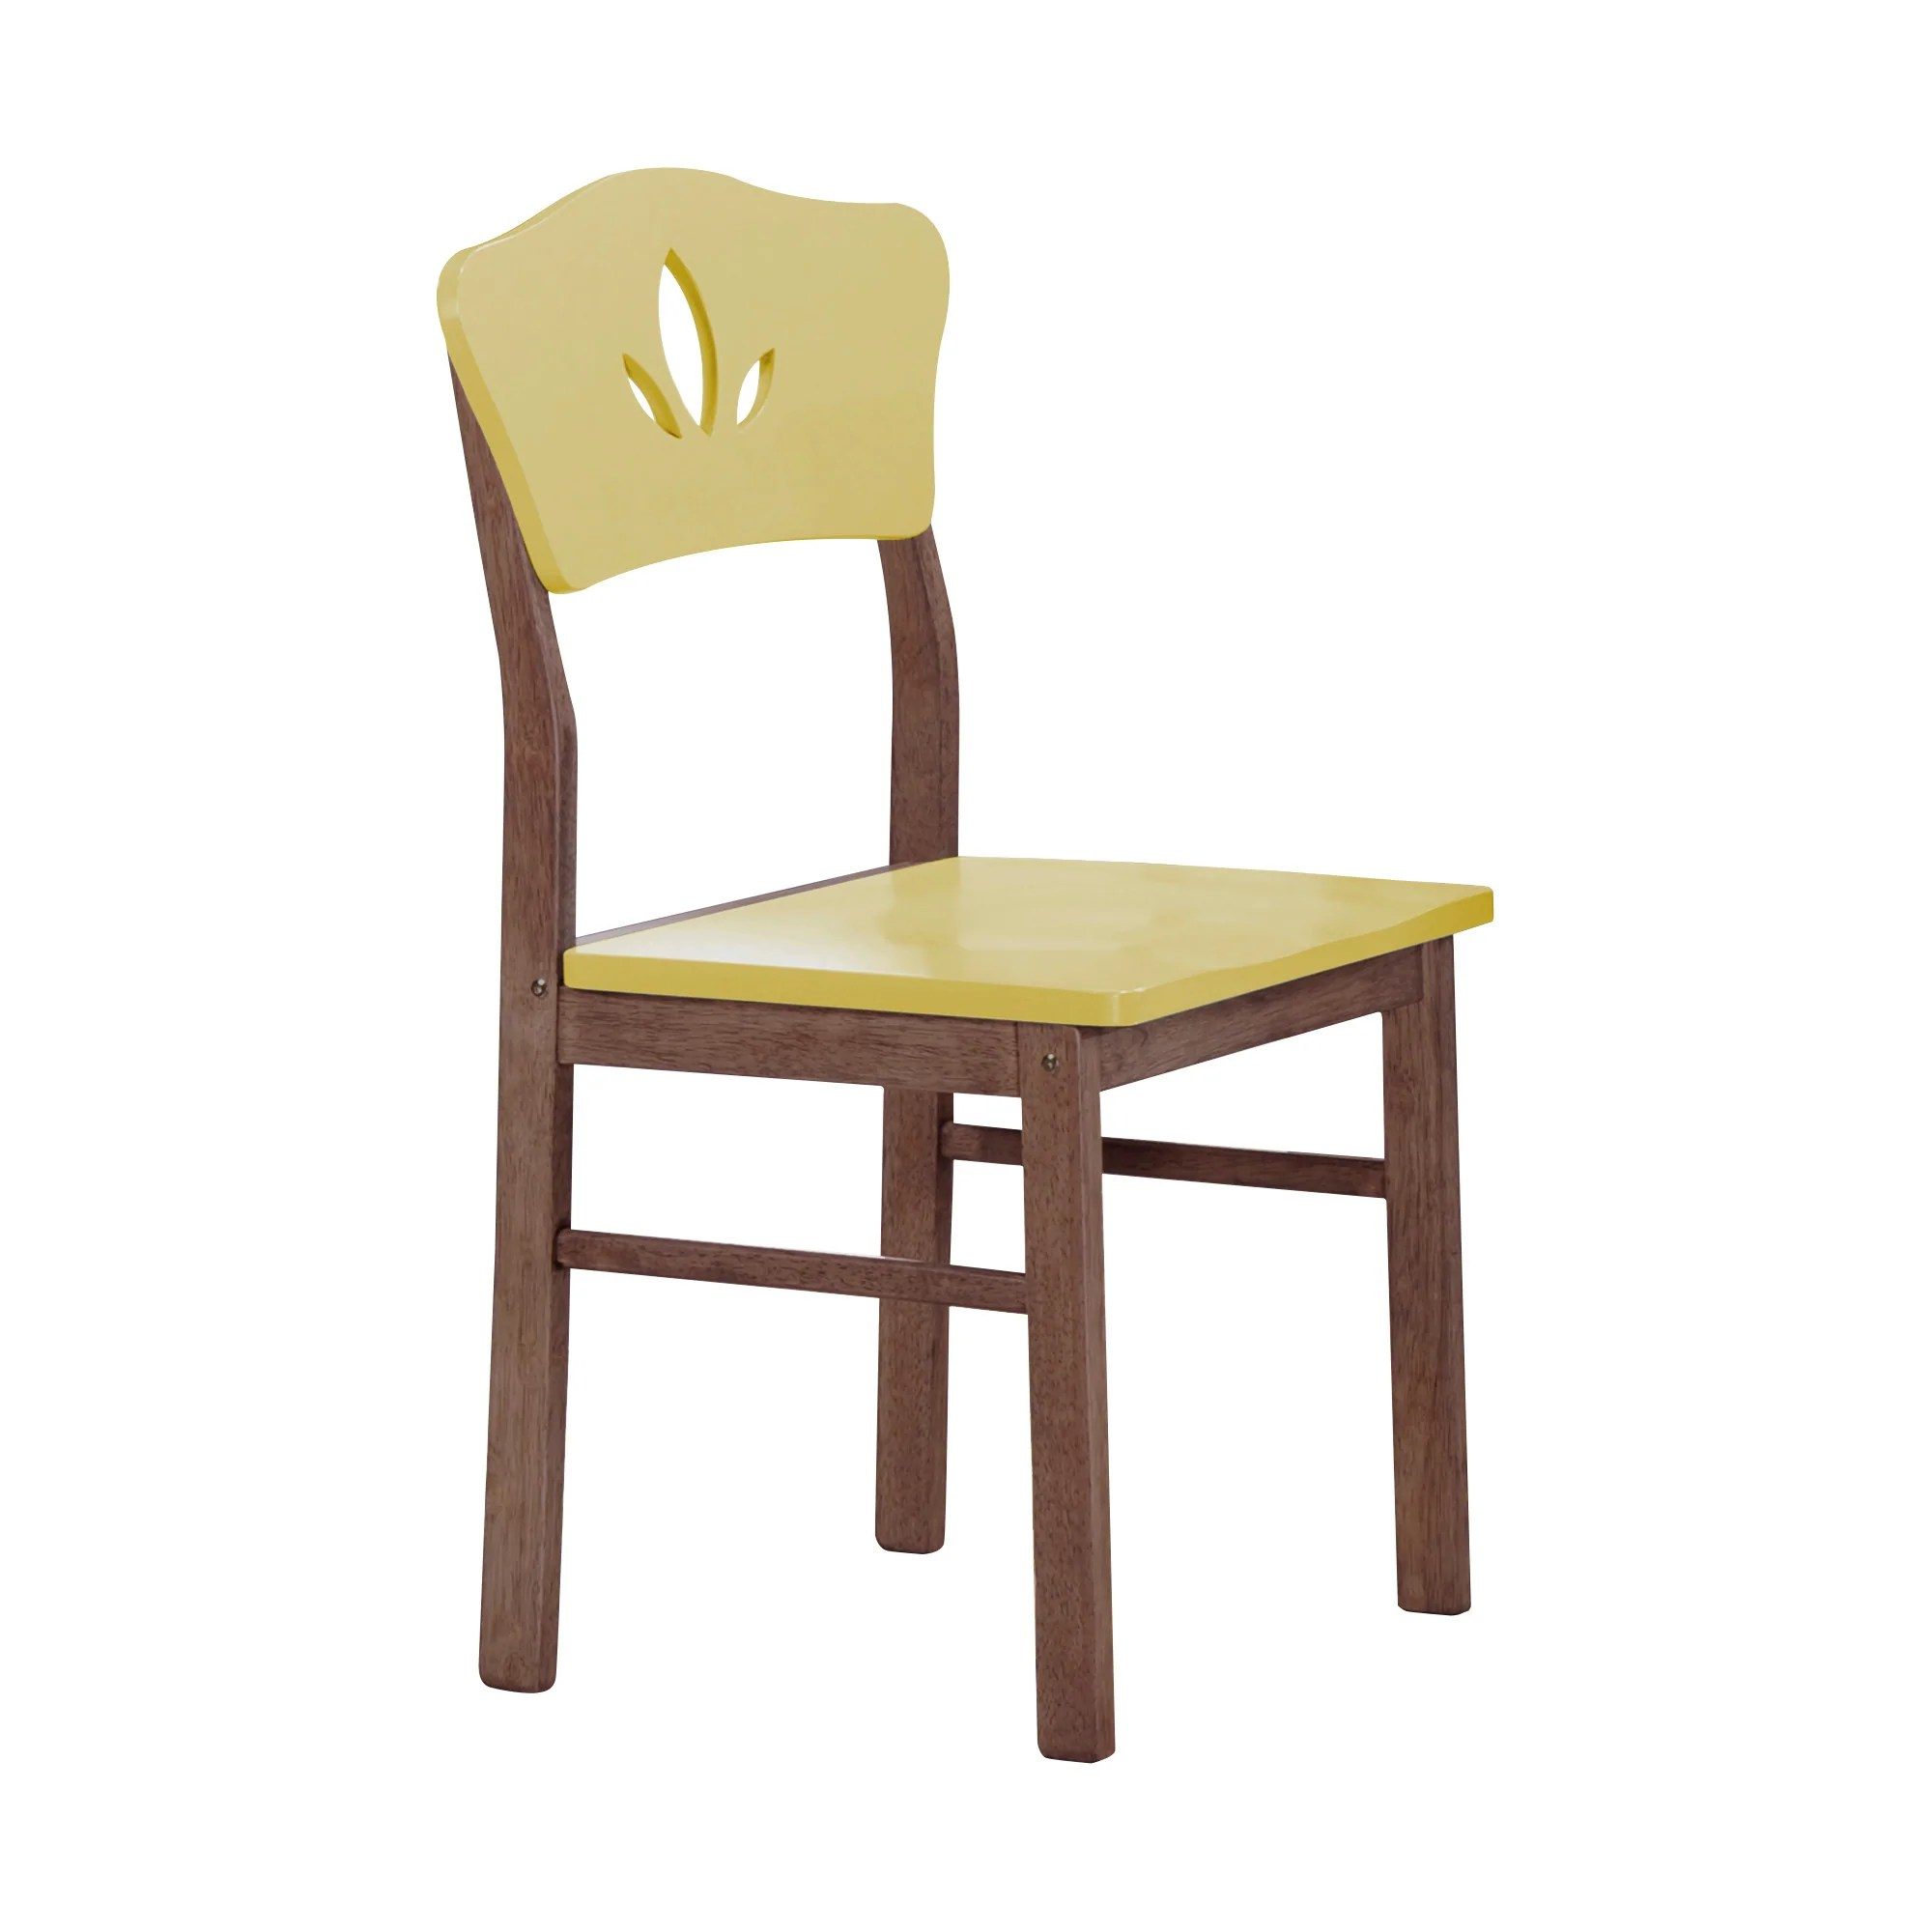 Lori Kitchen Dinette Retro Dining Chairs Yellow Chocolate Wood Contemporary Set Of 4 Pilaster Designs